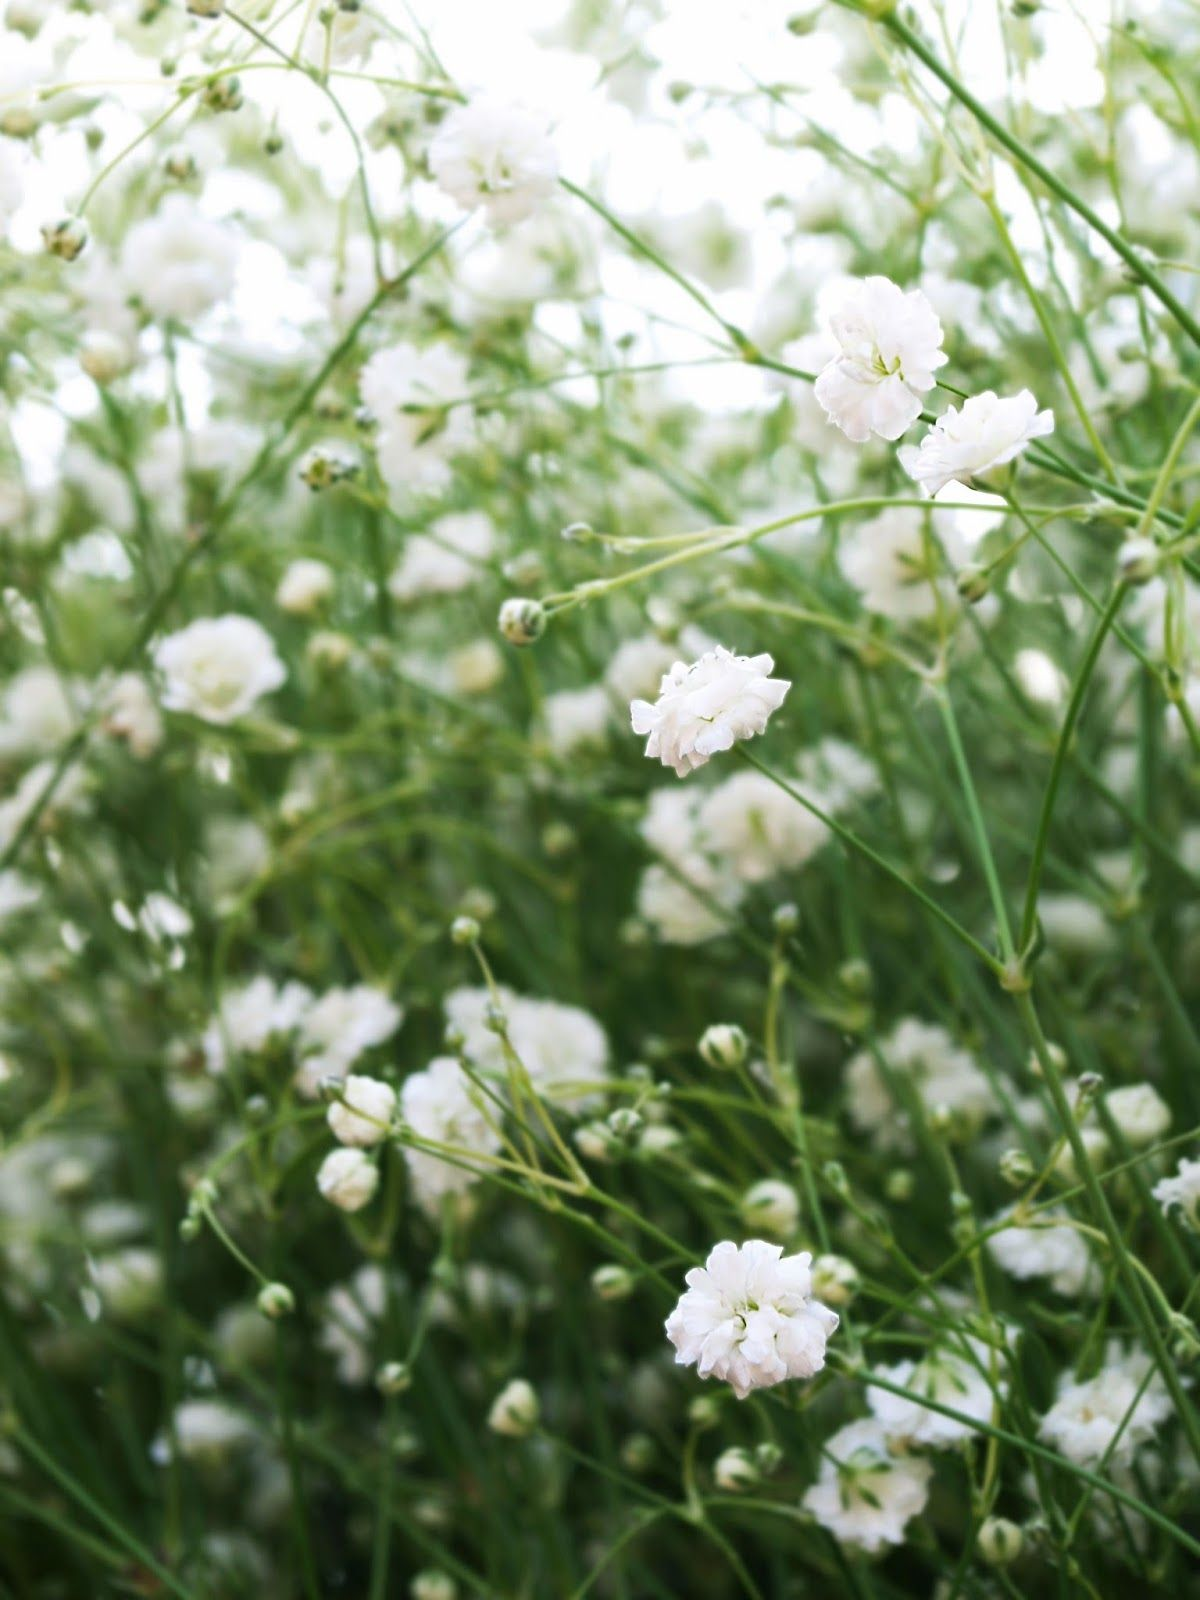 This Is Babys Breath It Has Many Beautiful Tiny White Rose Like